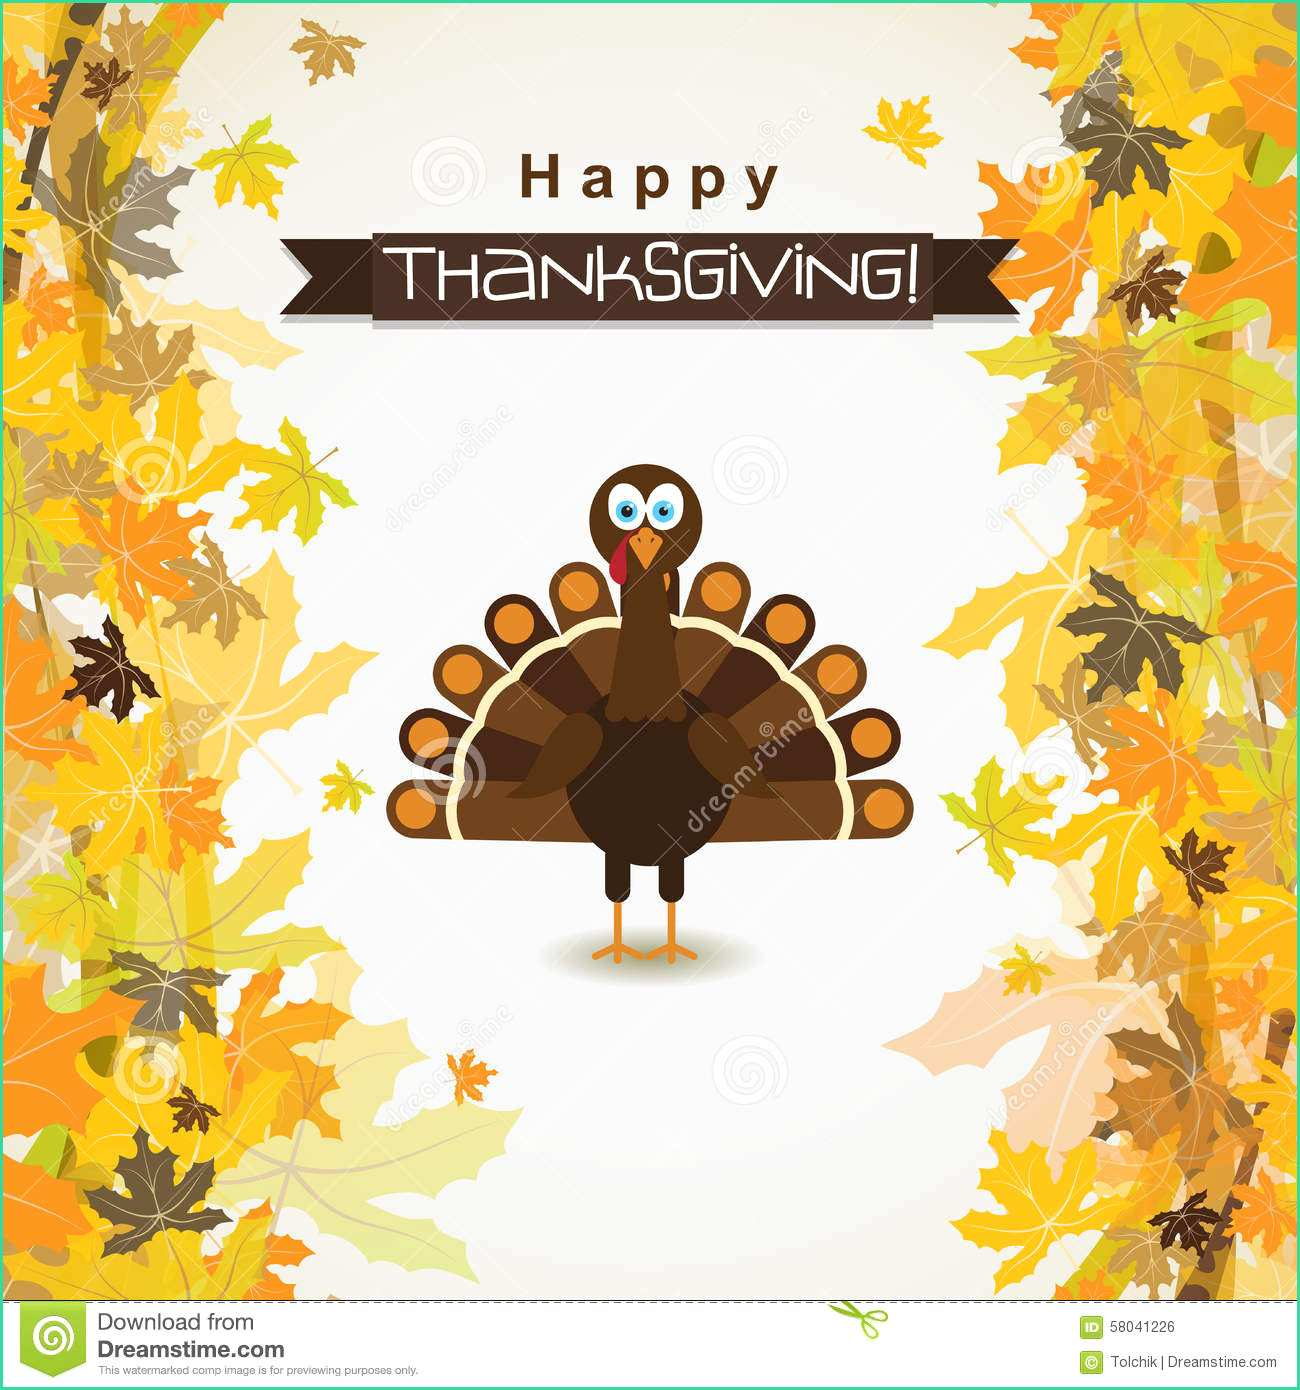 Best Thanksgiving Card Template Word Of Happy Thanksgiving Templates ? Happy Easter & Thanksgiving